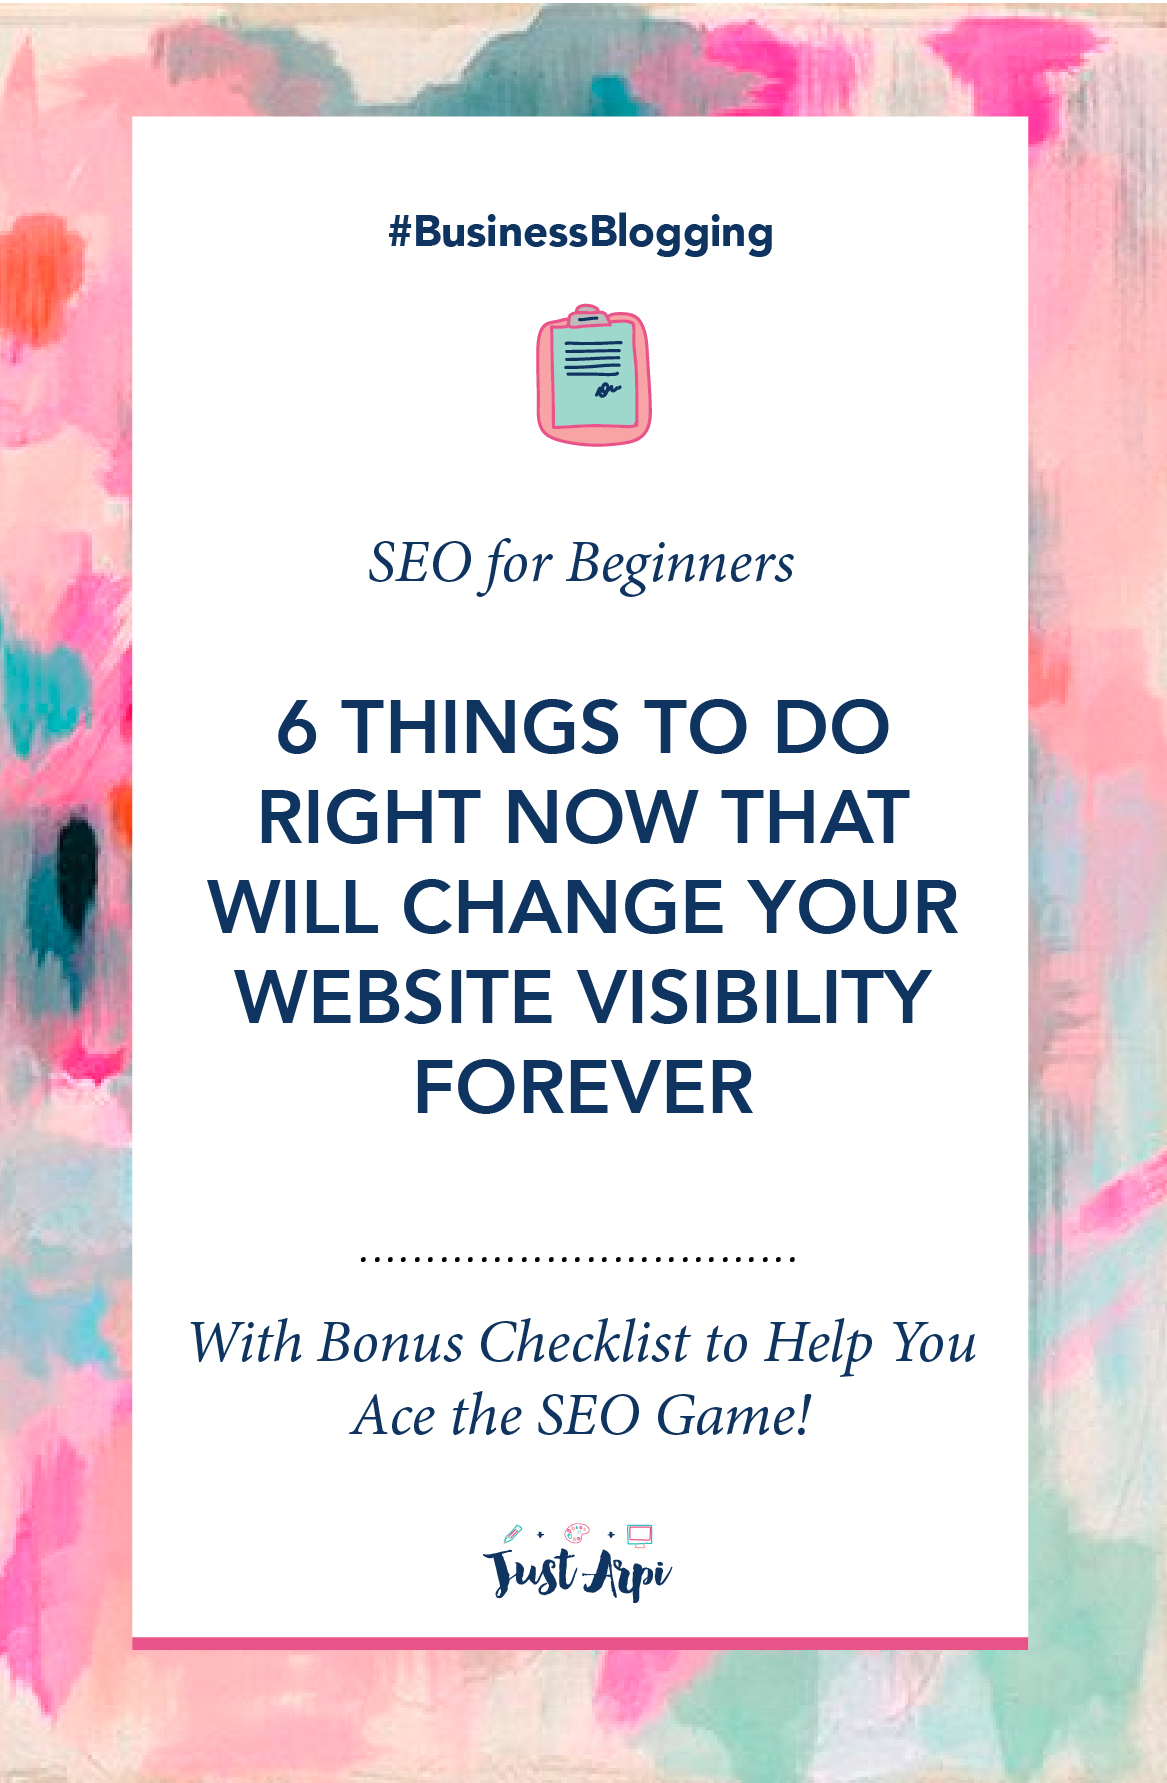 SEO for beginners   tricks to get more visibility for your website